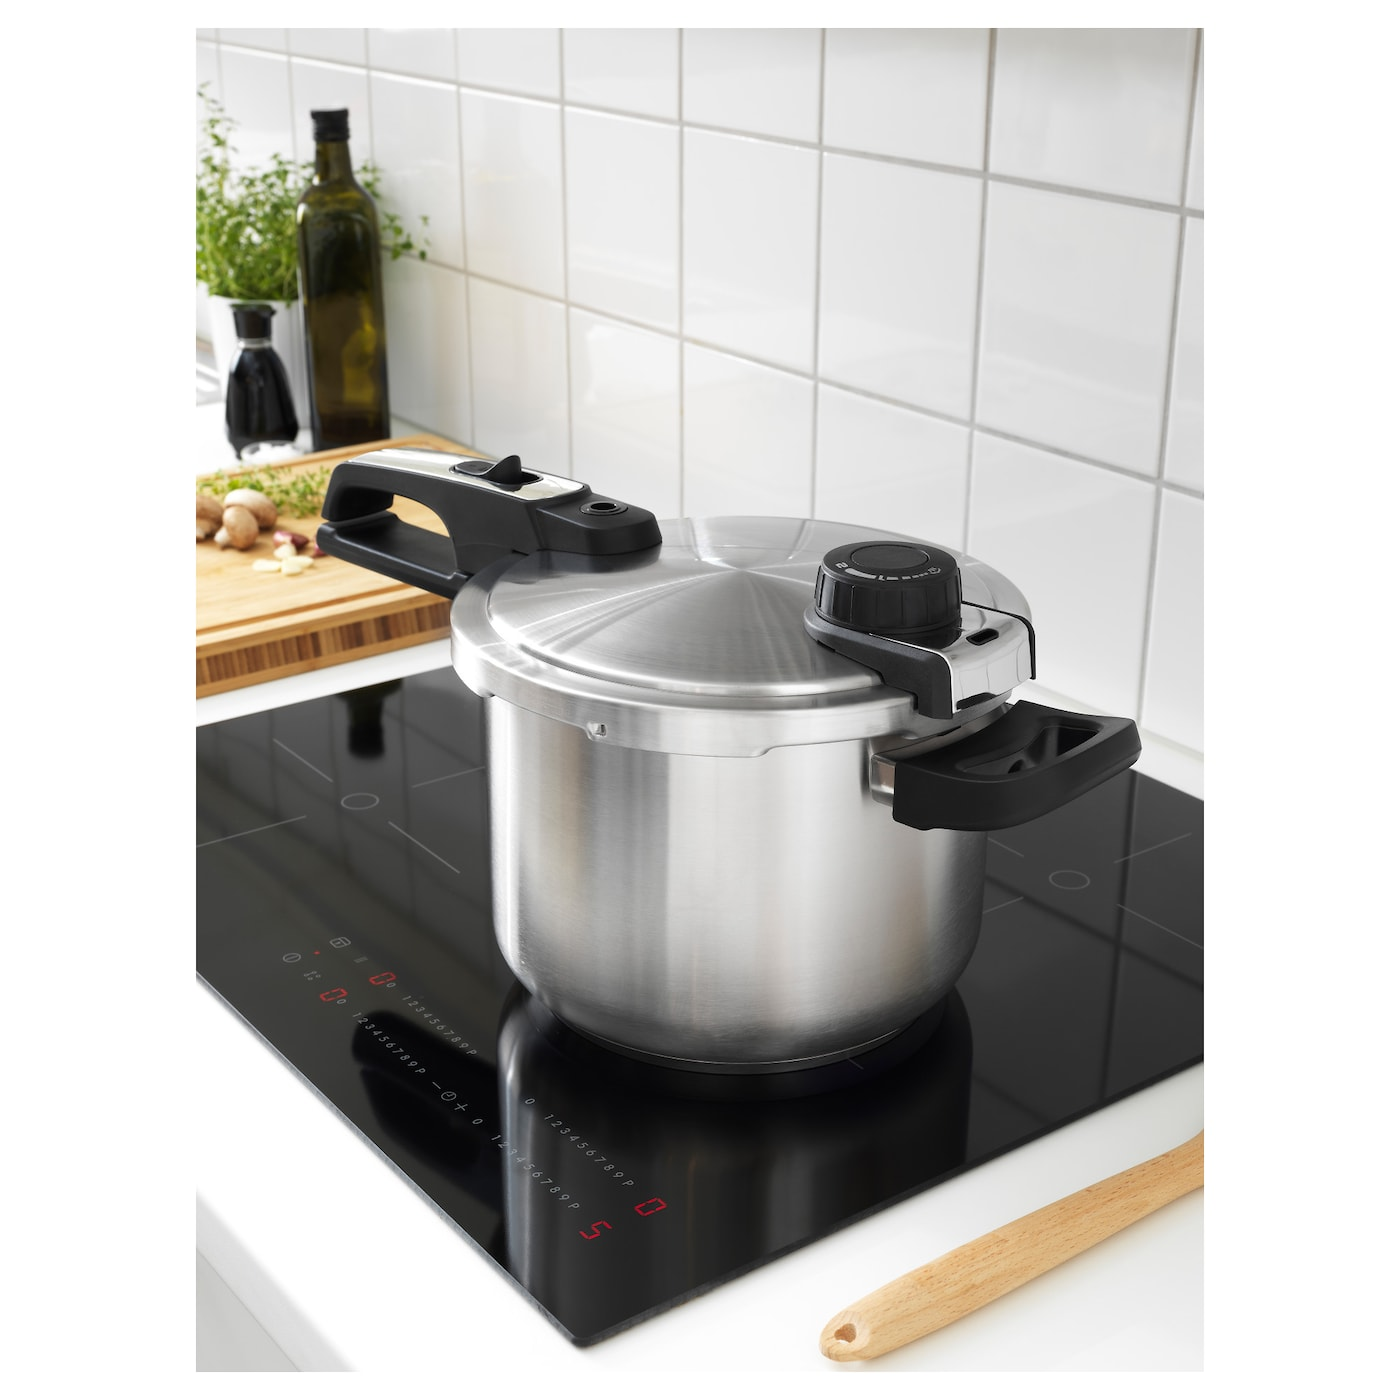 IKEA VÄRDESÄTTA pressure cooker Works well on all types of hobs, including induction hob.